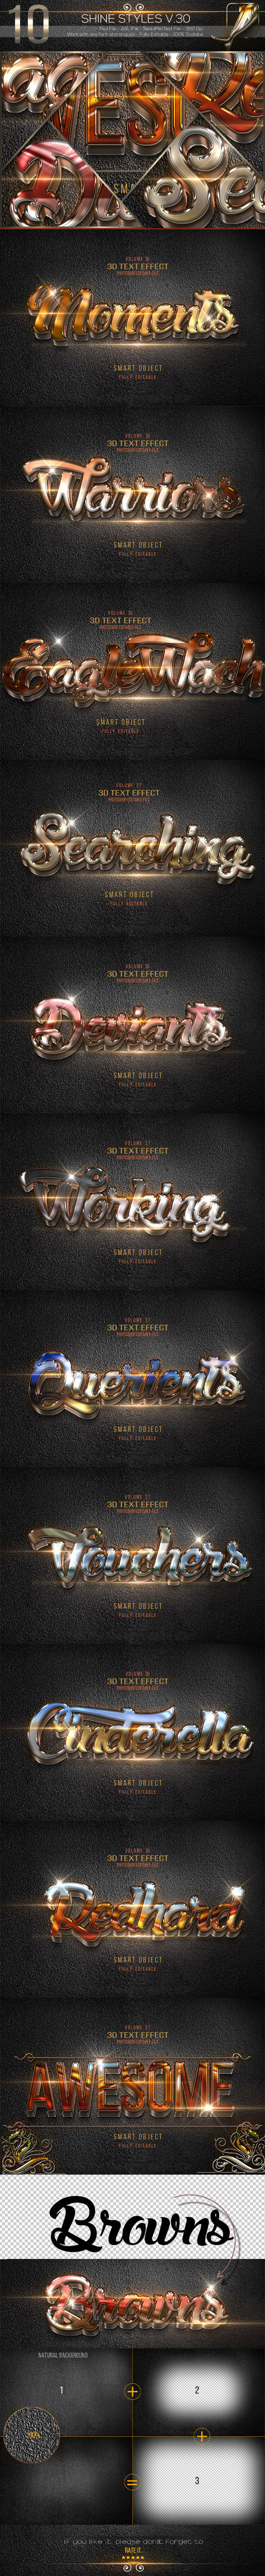 graphicriver_10_3d_text_effects_v30_11394956_cap